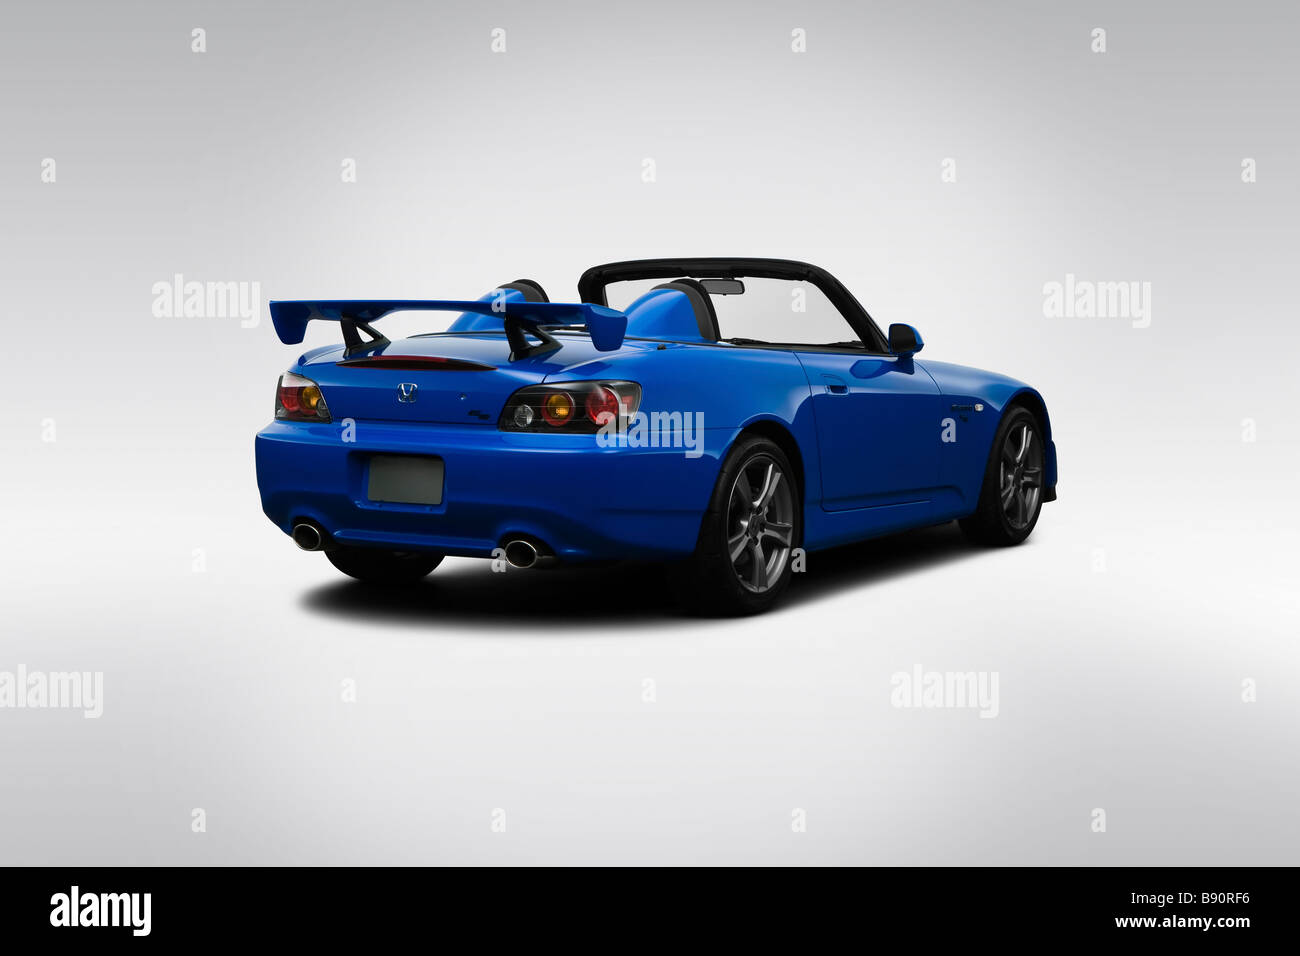 2009 Honda S2000 CR In Blue   Rear Angle View